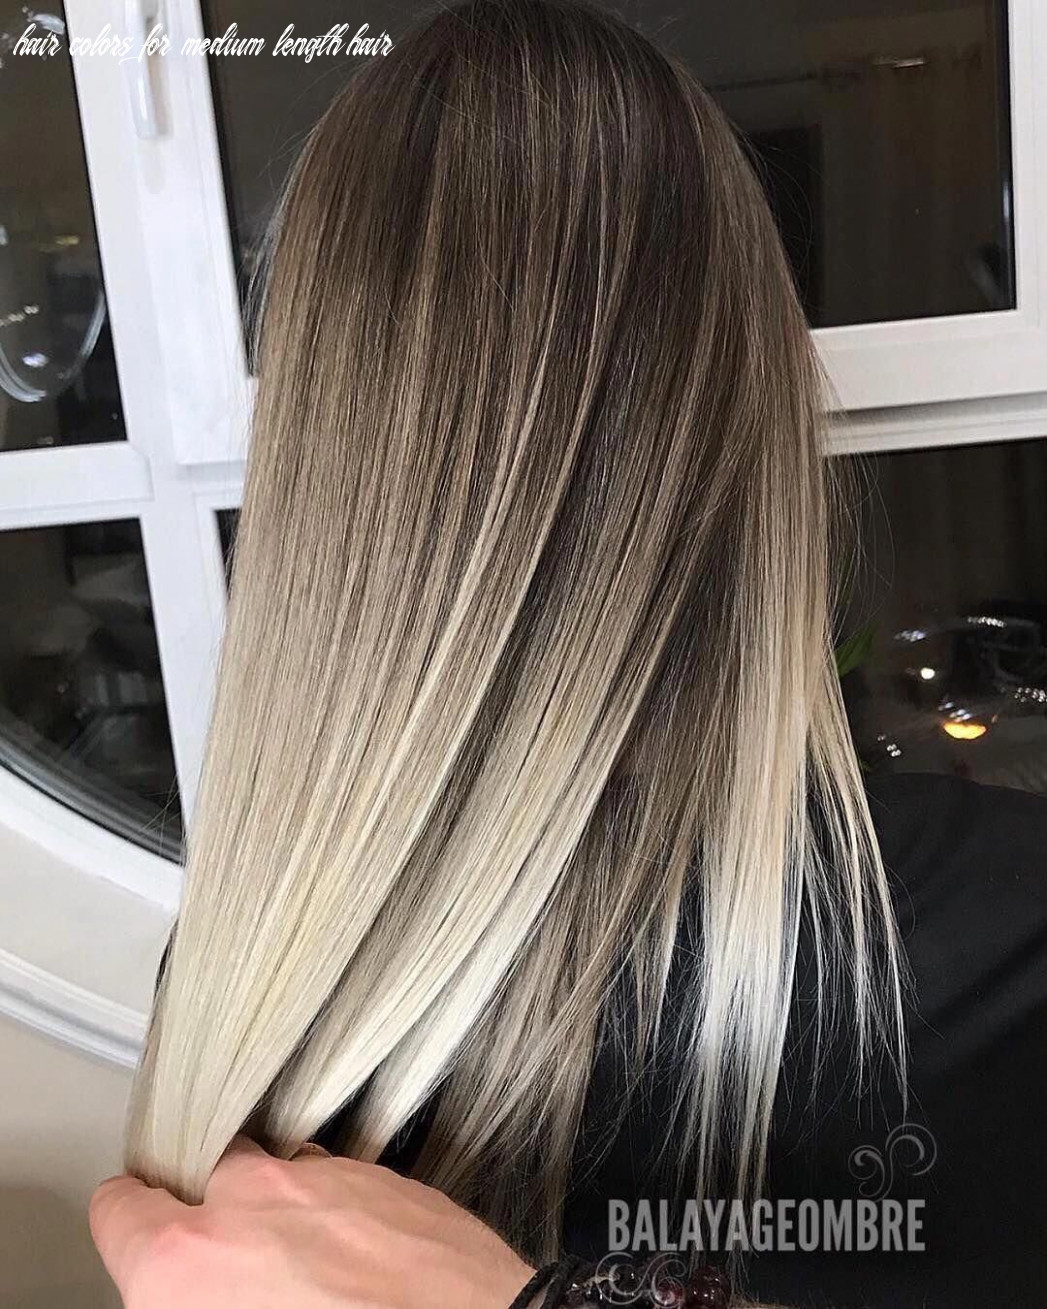 11 ombre balayage hairstyles for medium length hair, hair color